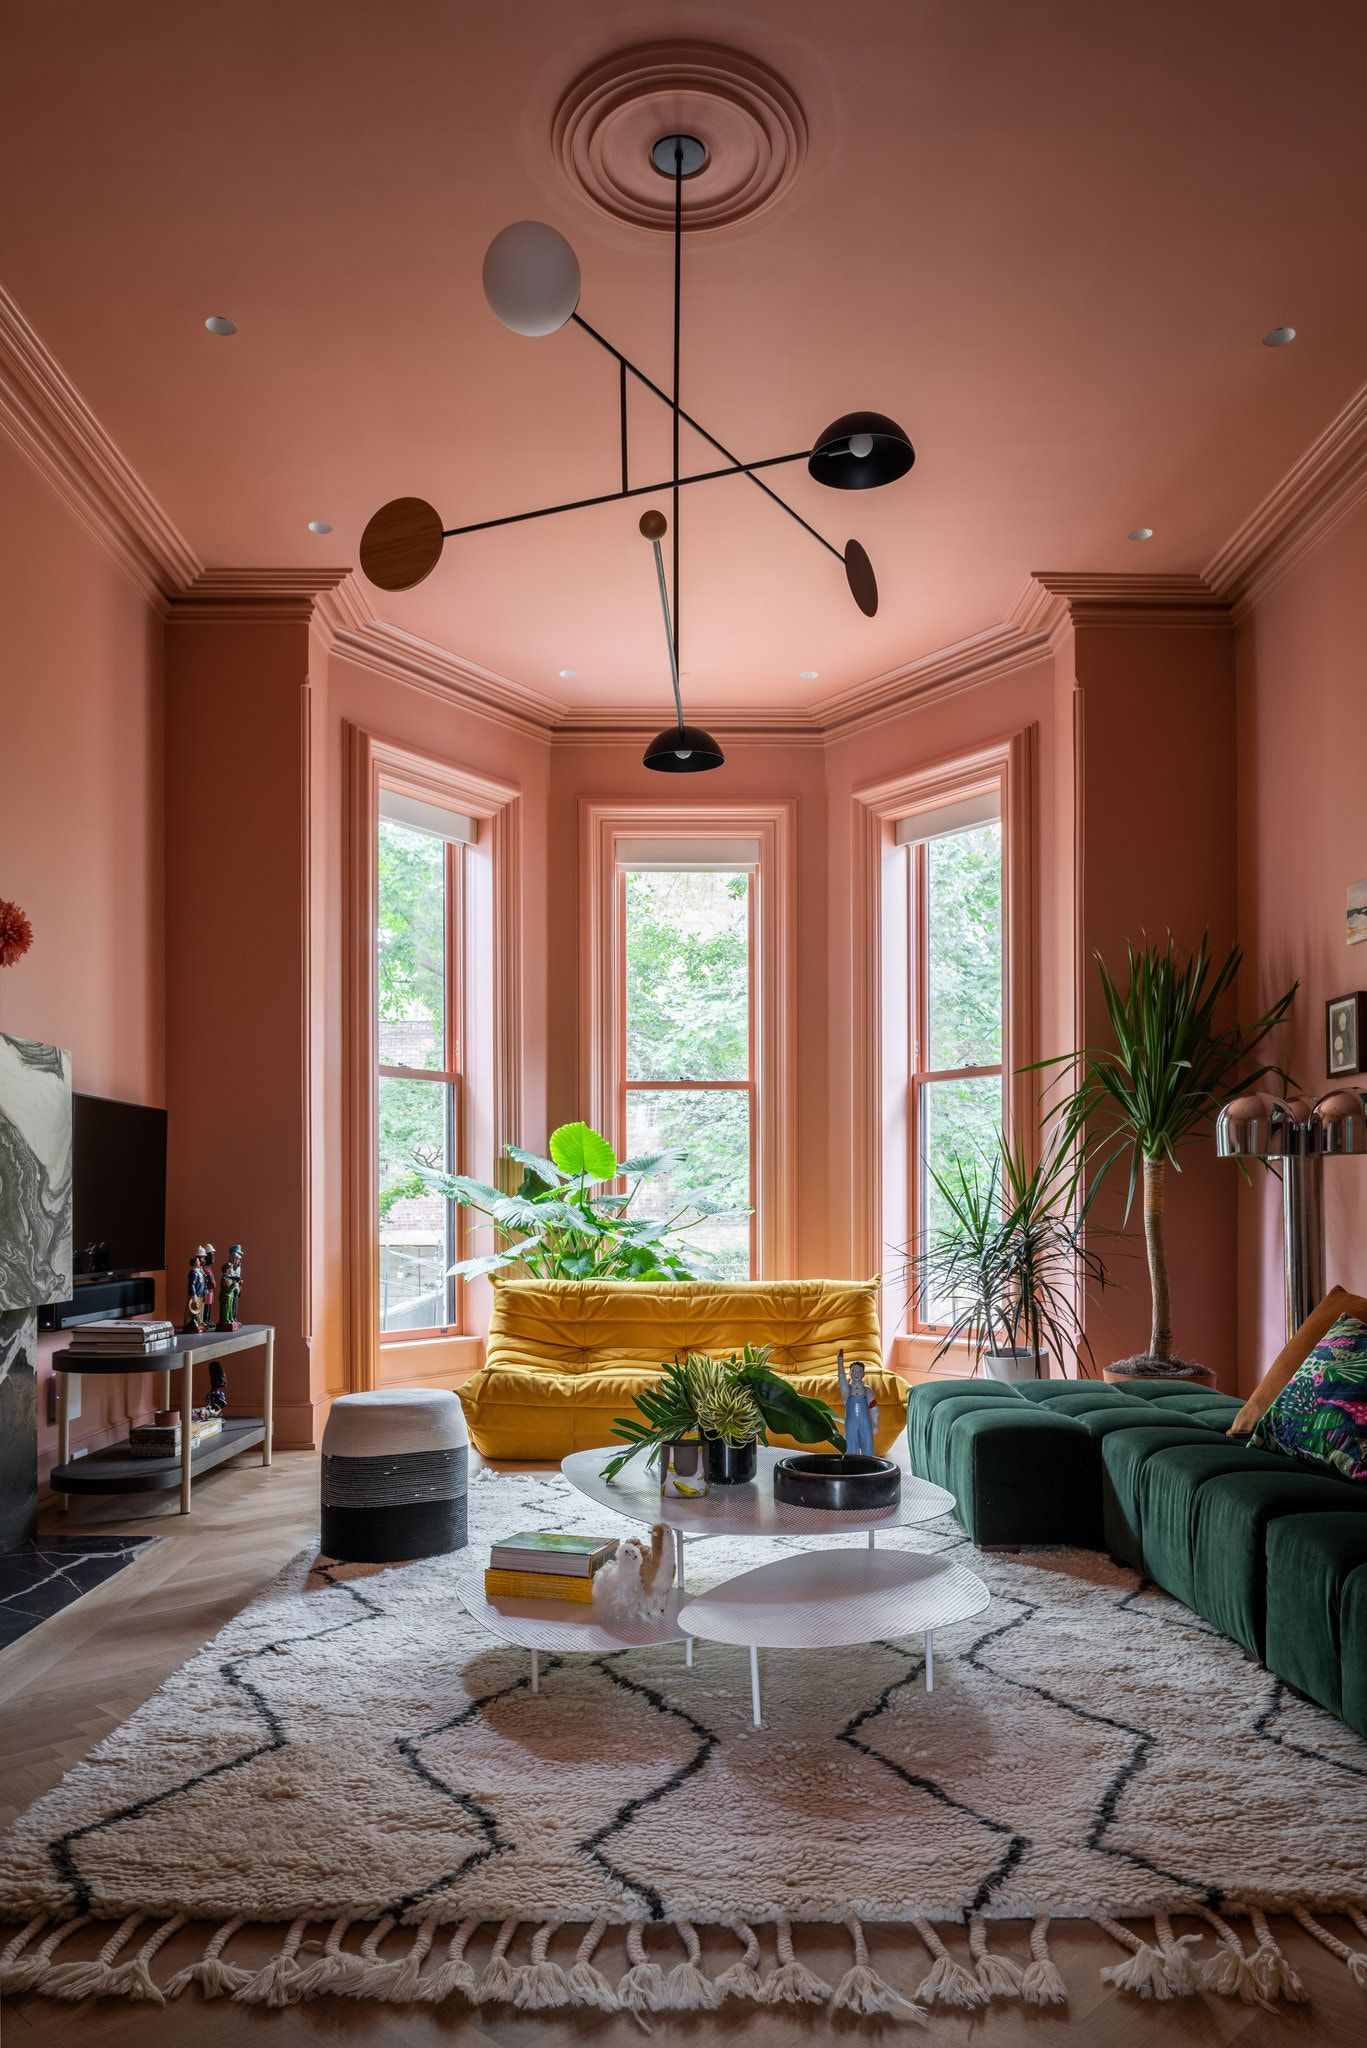 A Colorful Townhouse With Nods To James Turrell Brooklyn Brownstone Brownstone Interior